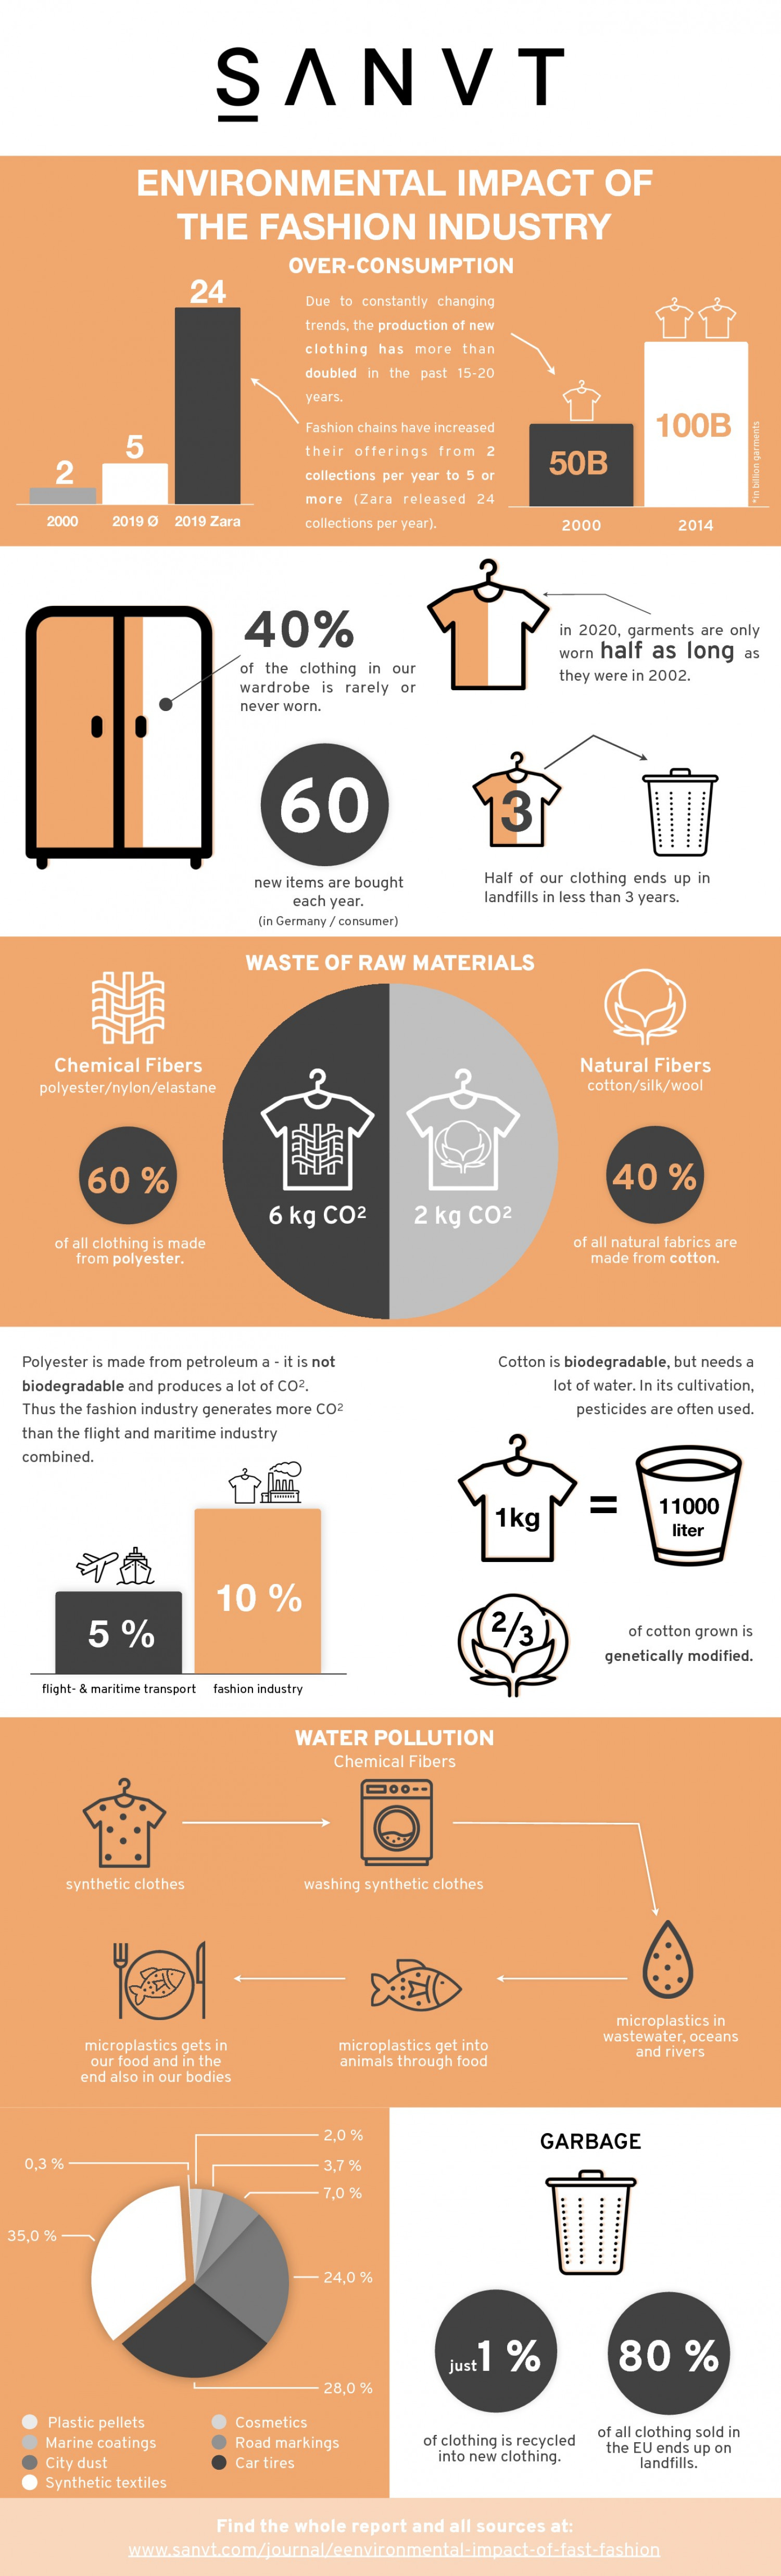 The environmental impact of the fast fashion industry Infographic